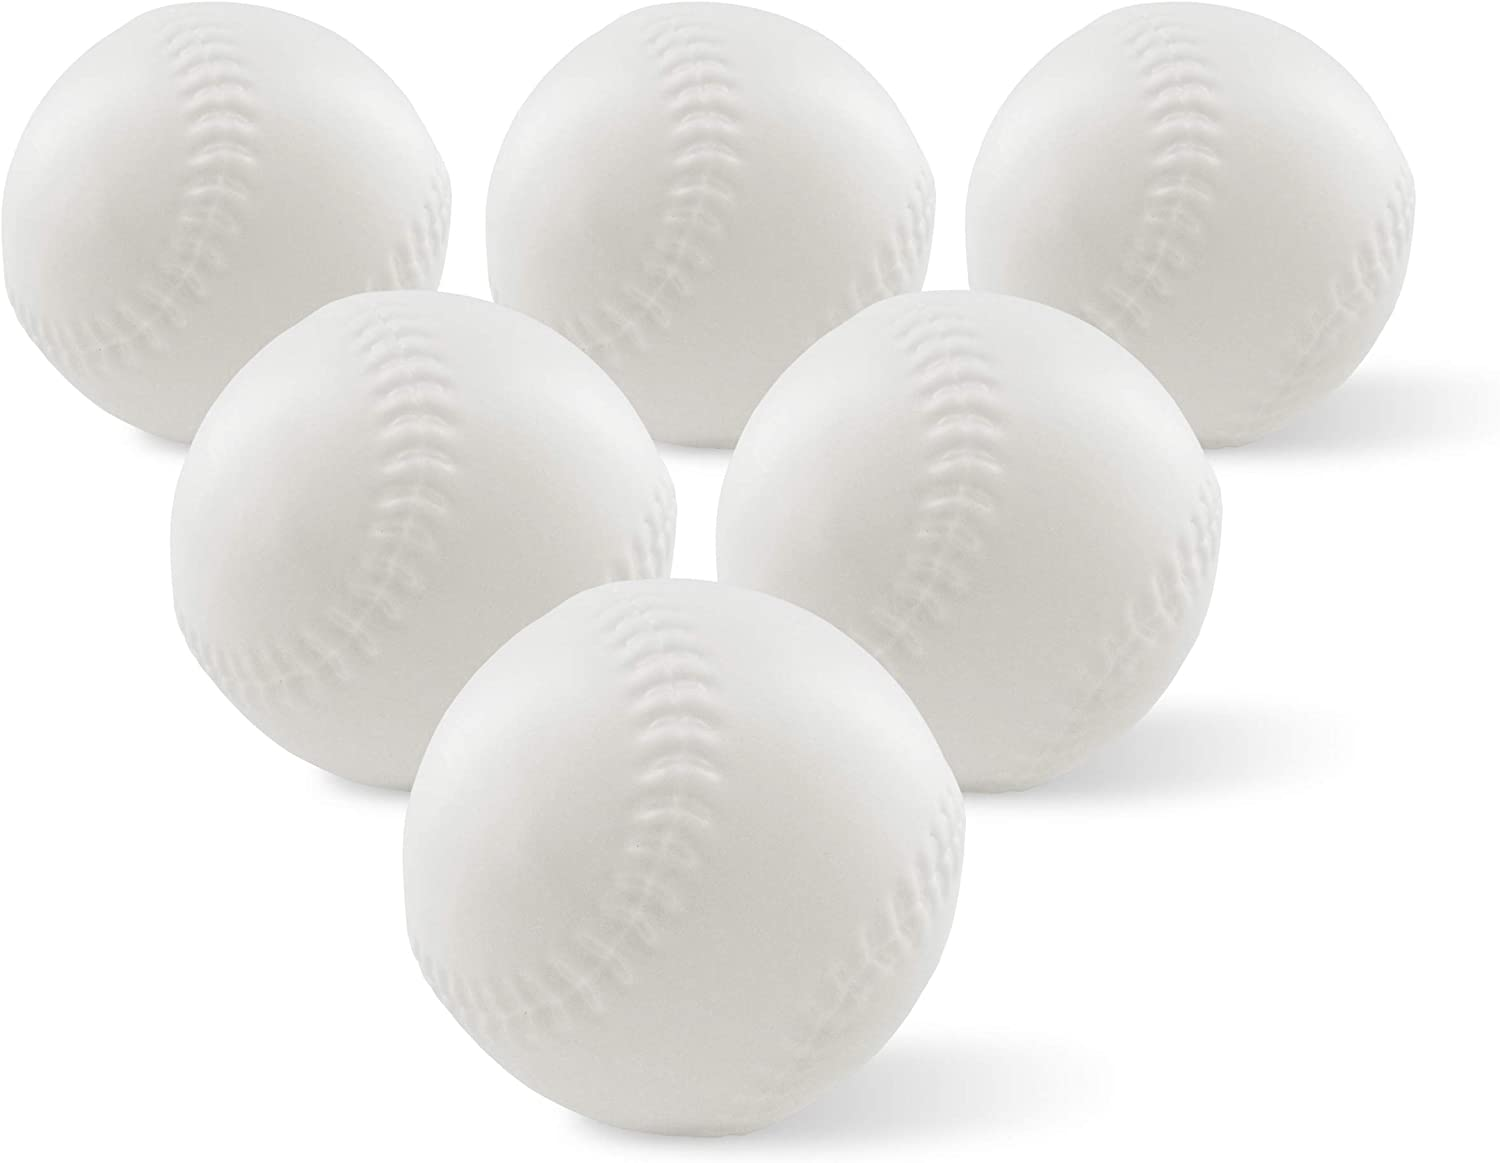 Toddler & Little Kids Replacement Baseball - for Little Tikes TotSports T-Ball Set - 6 Pack